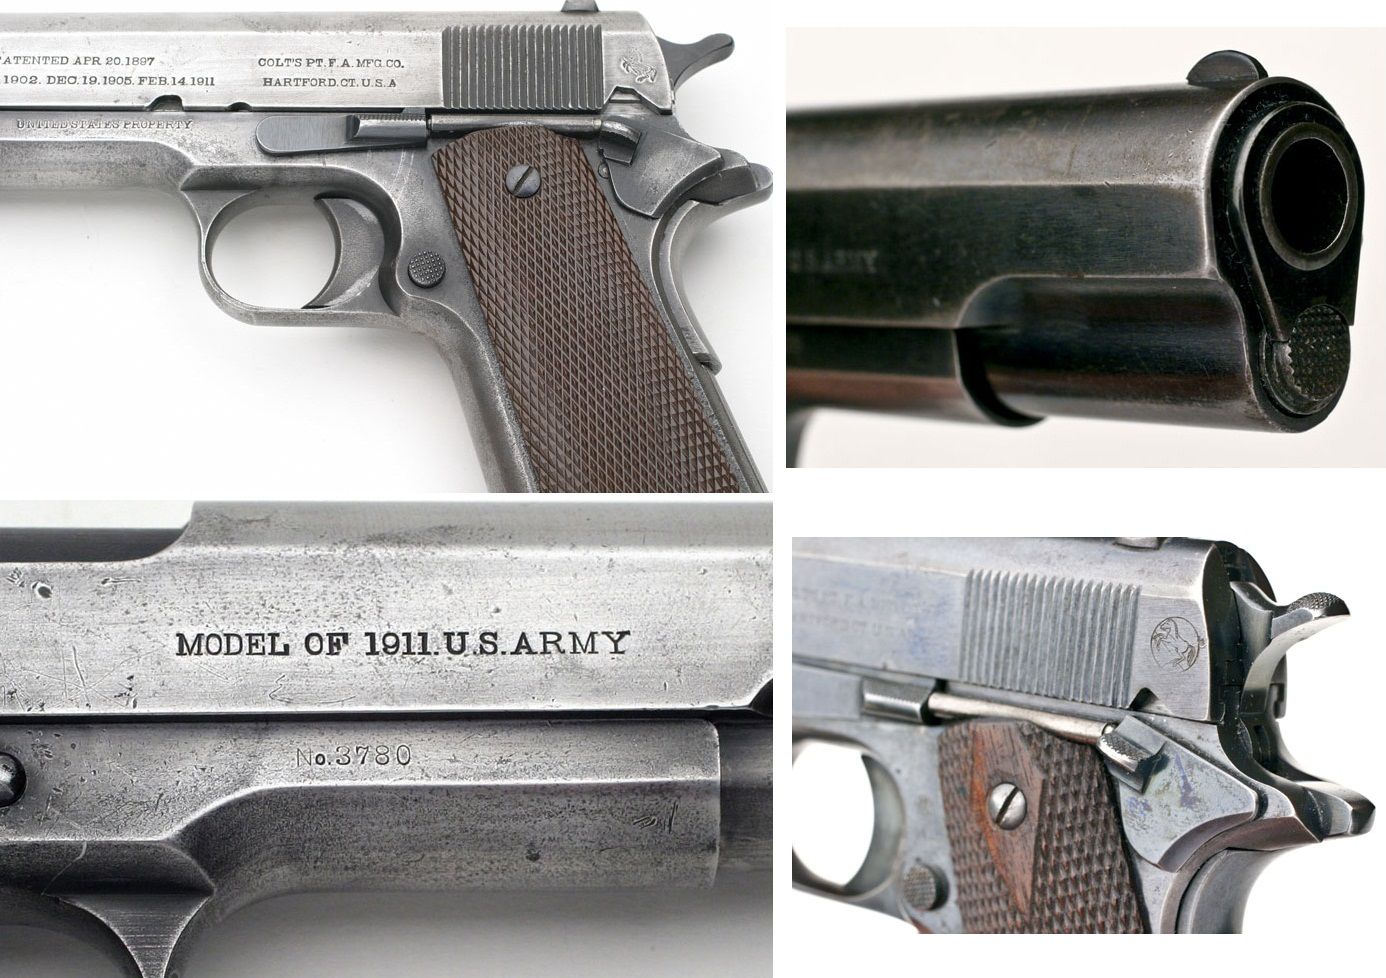 Colt Model of 1911 U.S. Marine Corps, First Shipment